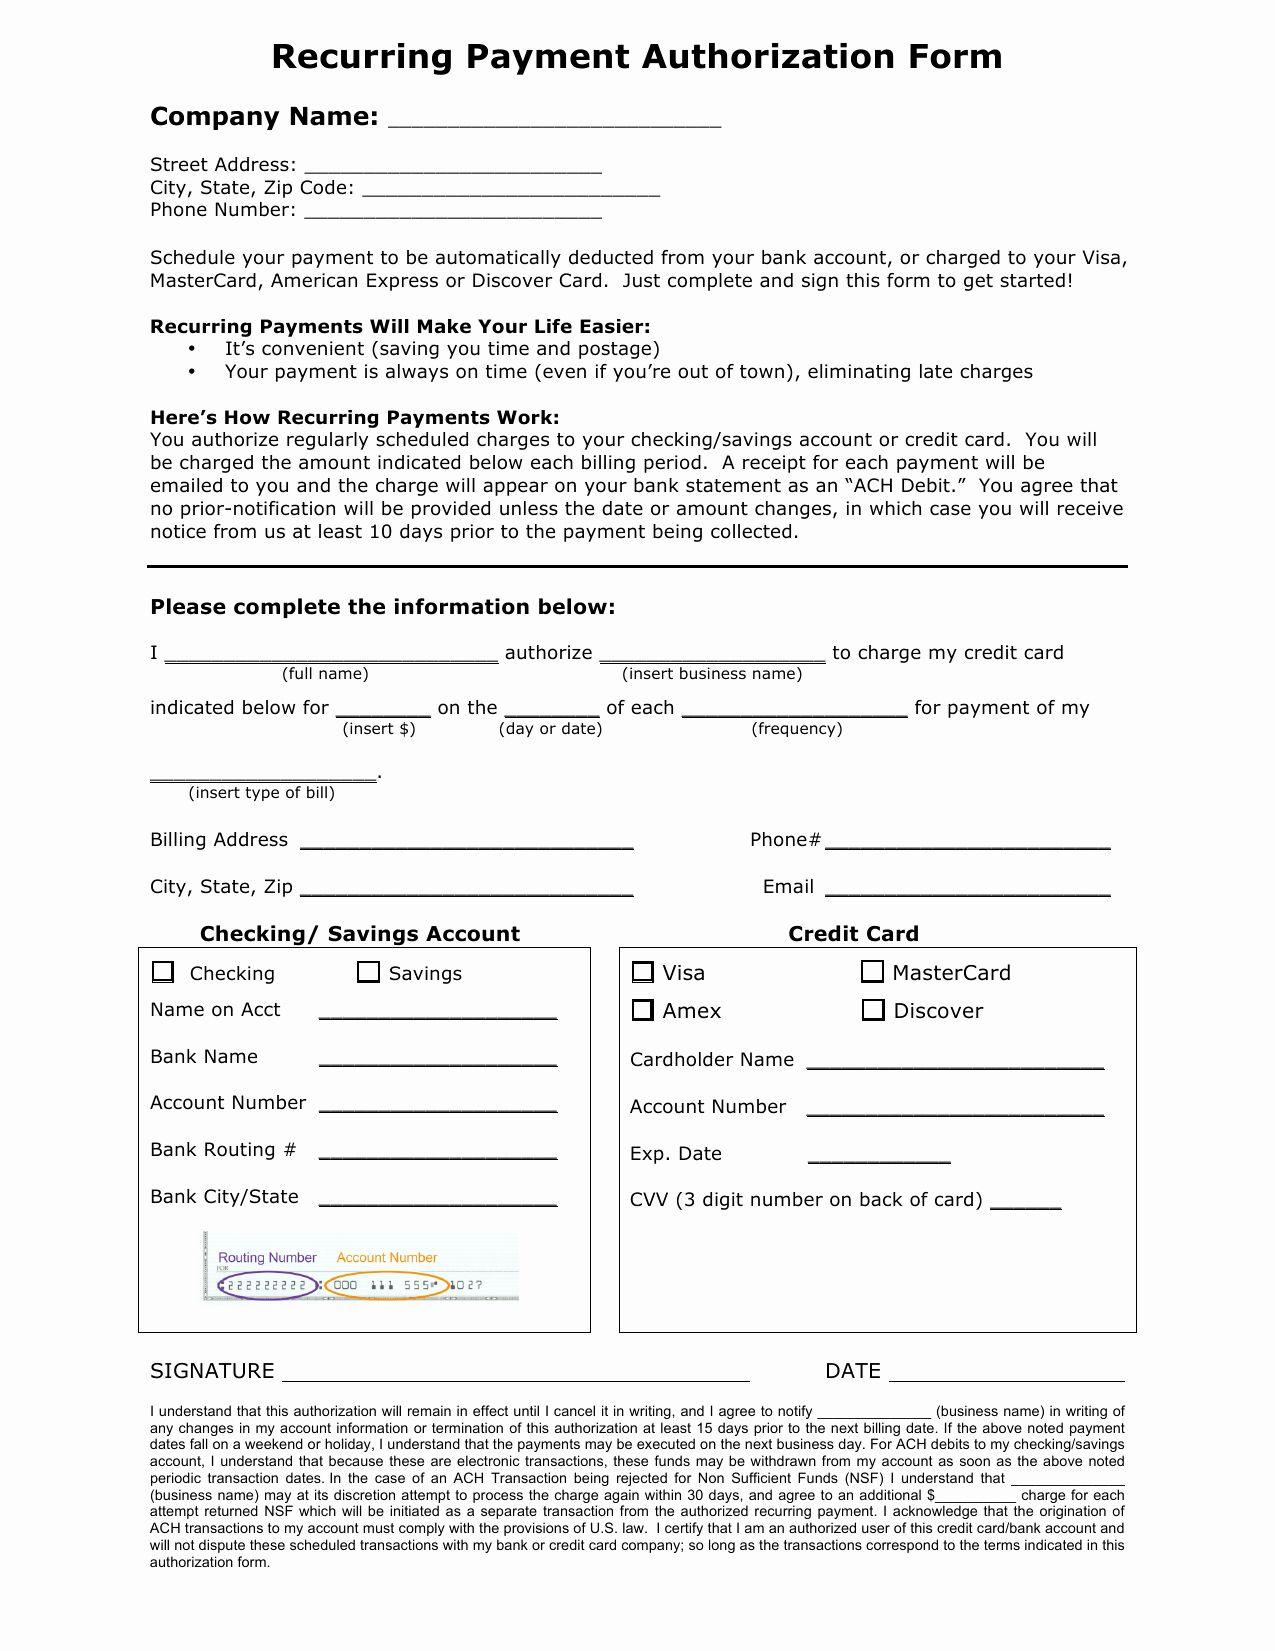 Credit Card Authorization Form Word Unique Download Recurring Payment Authorization Form Business Card Template Word Free Business Card Templates Card Template Credit card form template word